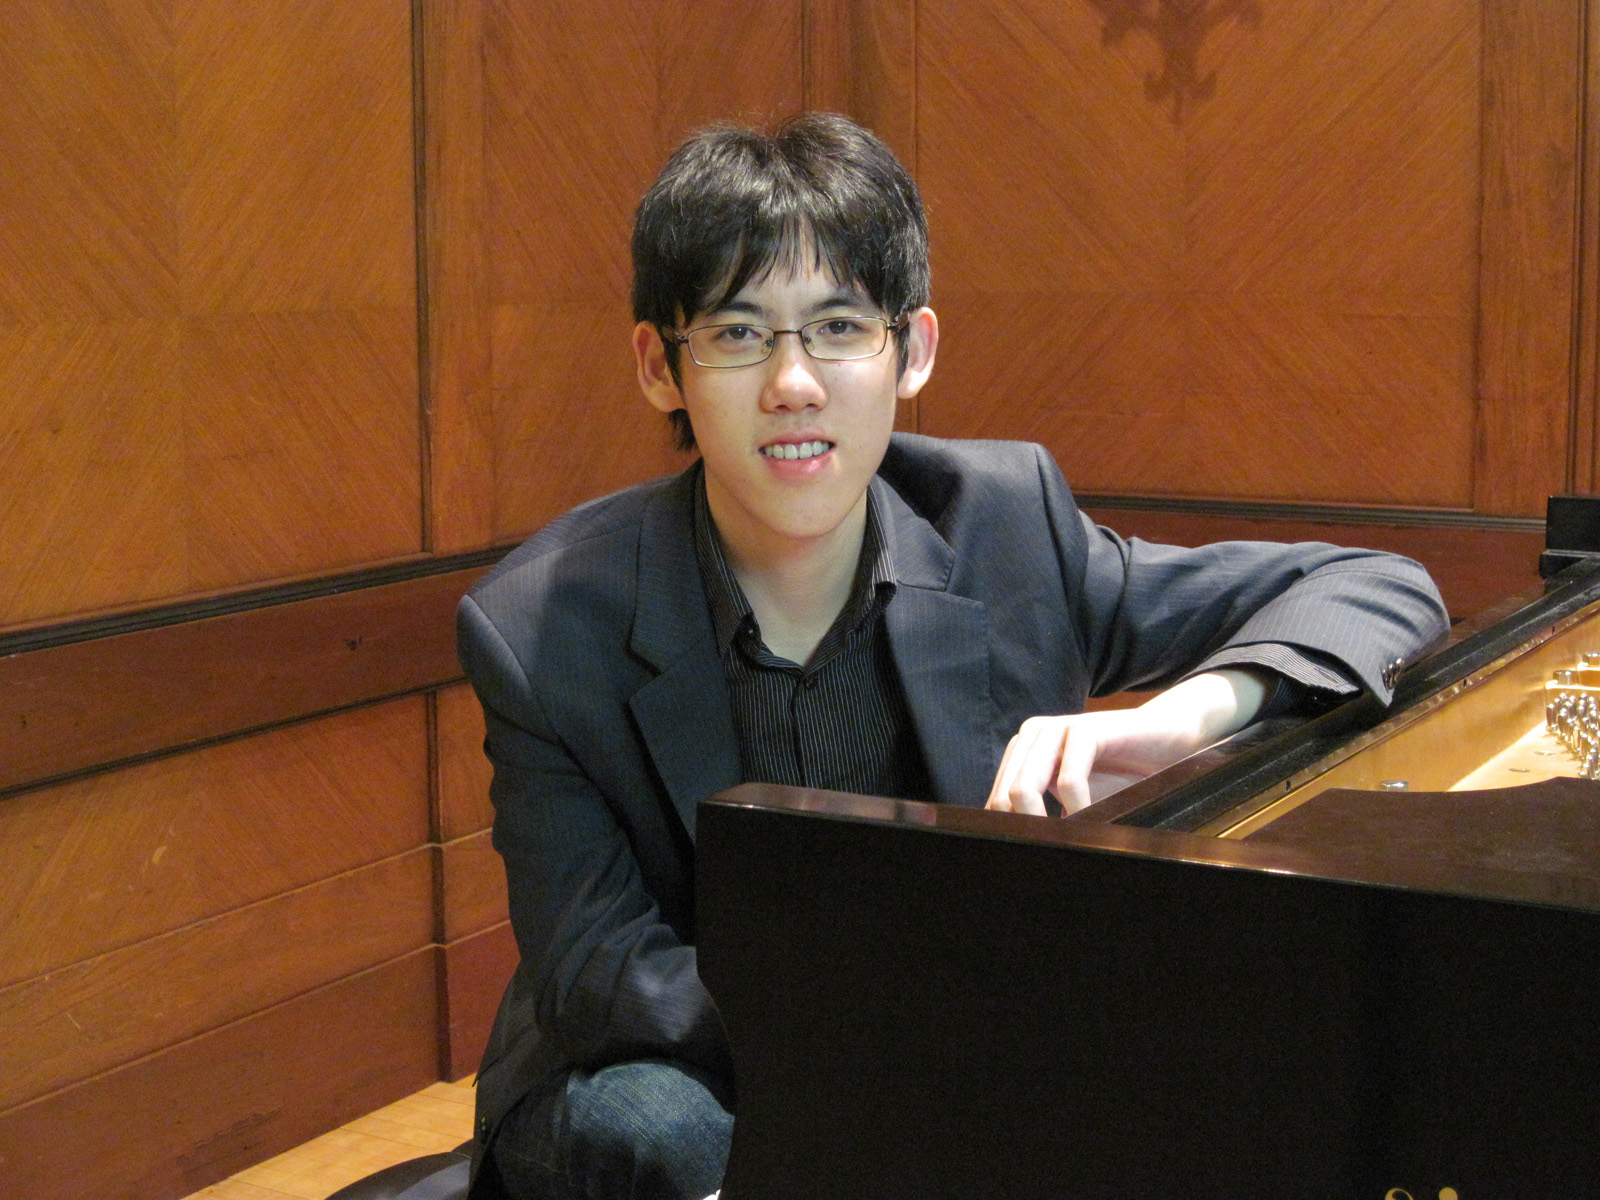 Tour Van Cliburn International Piano Competition Dates 2011